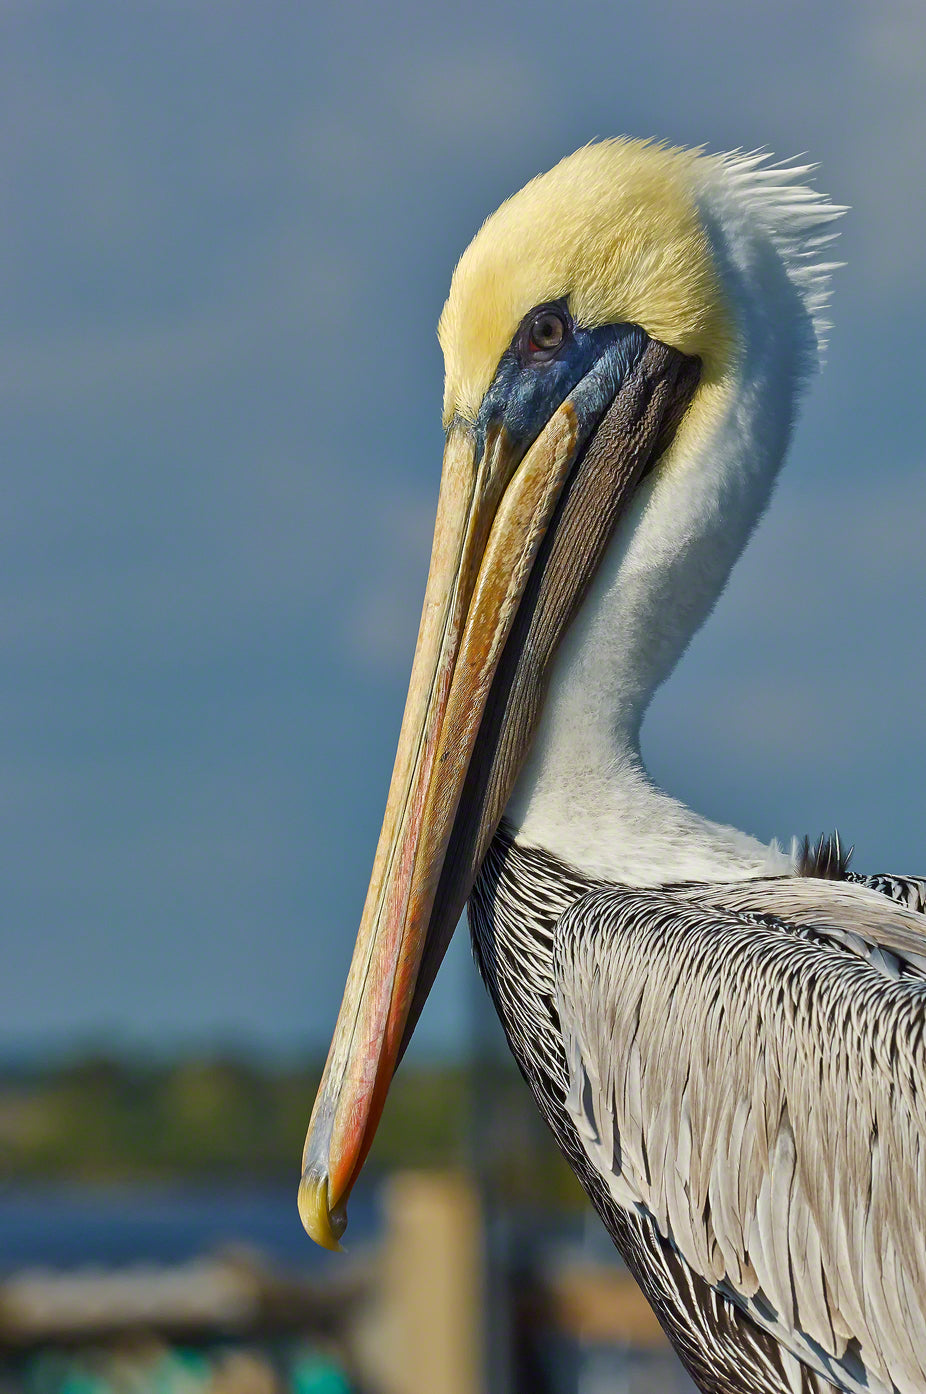 A photograph by Mike Ring of a Brown Pelican